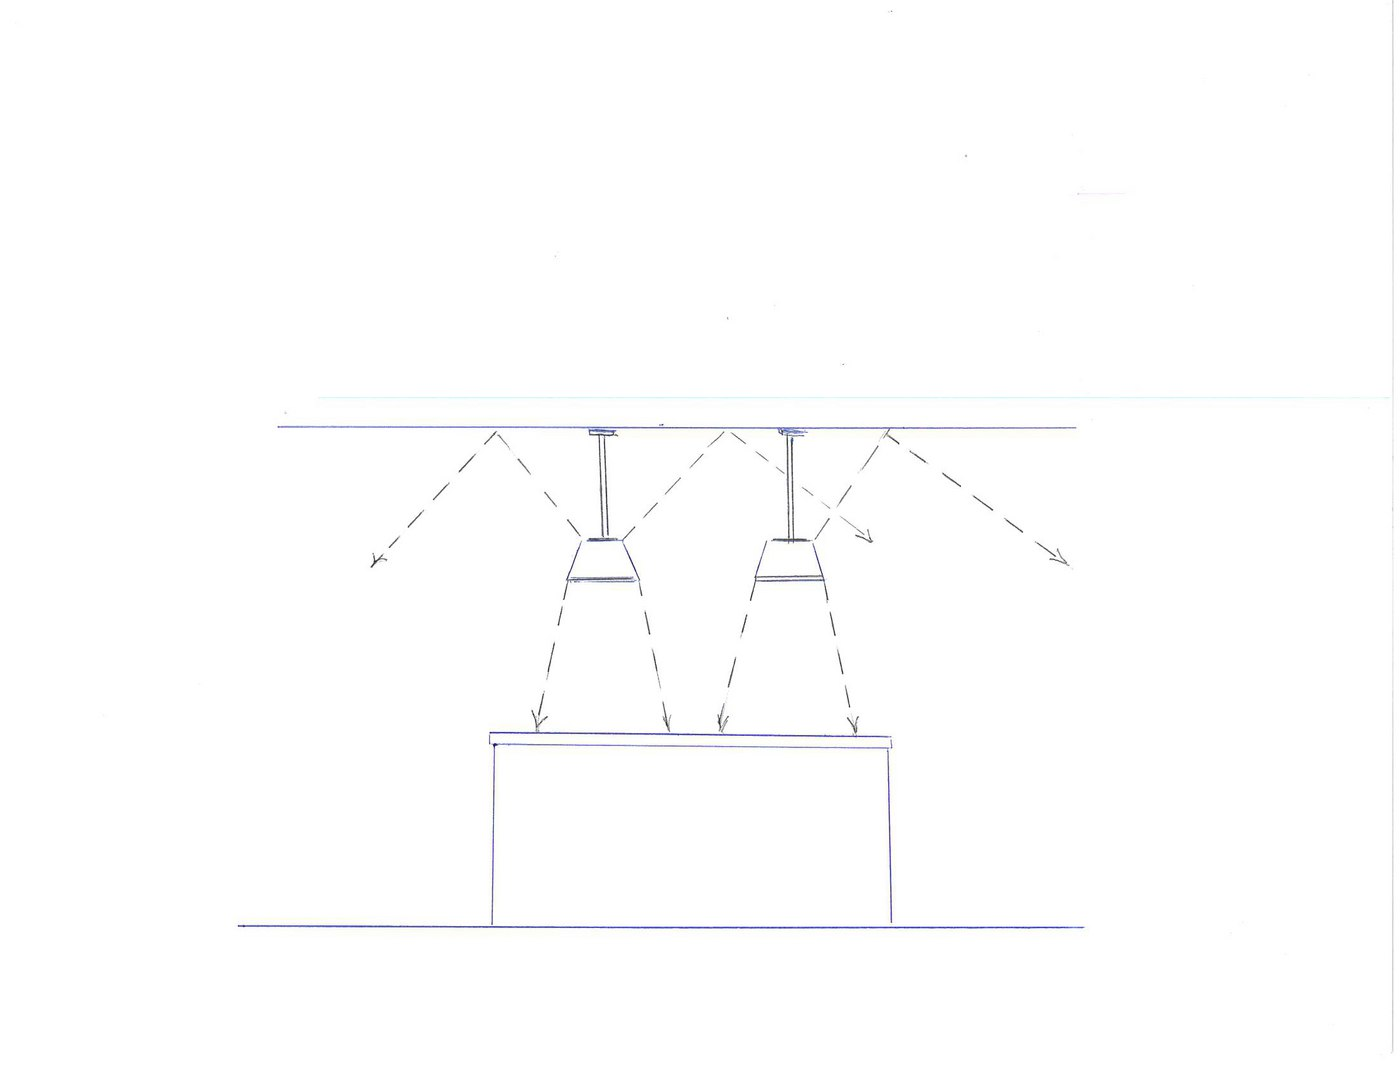 How Many Pendants Do You Hang Over a Kitchen Island? Kitchen Island Wiring Diagram on kitchen light wiring diagram, kitchen island outlet wiring, kitchen island electrical wiring,